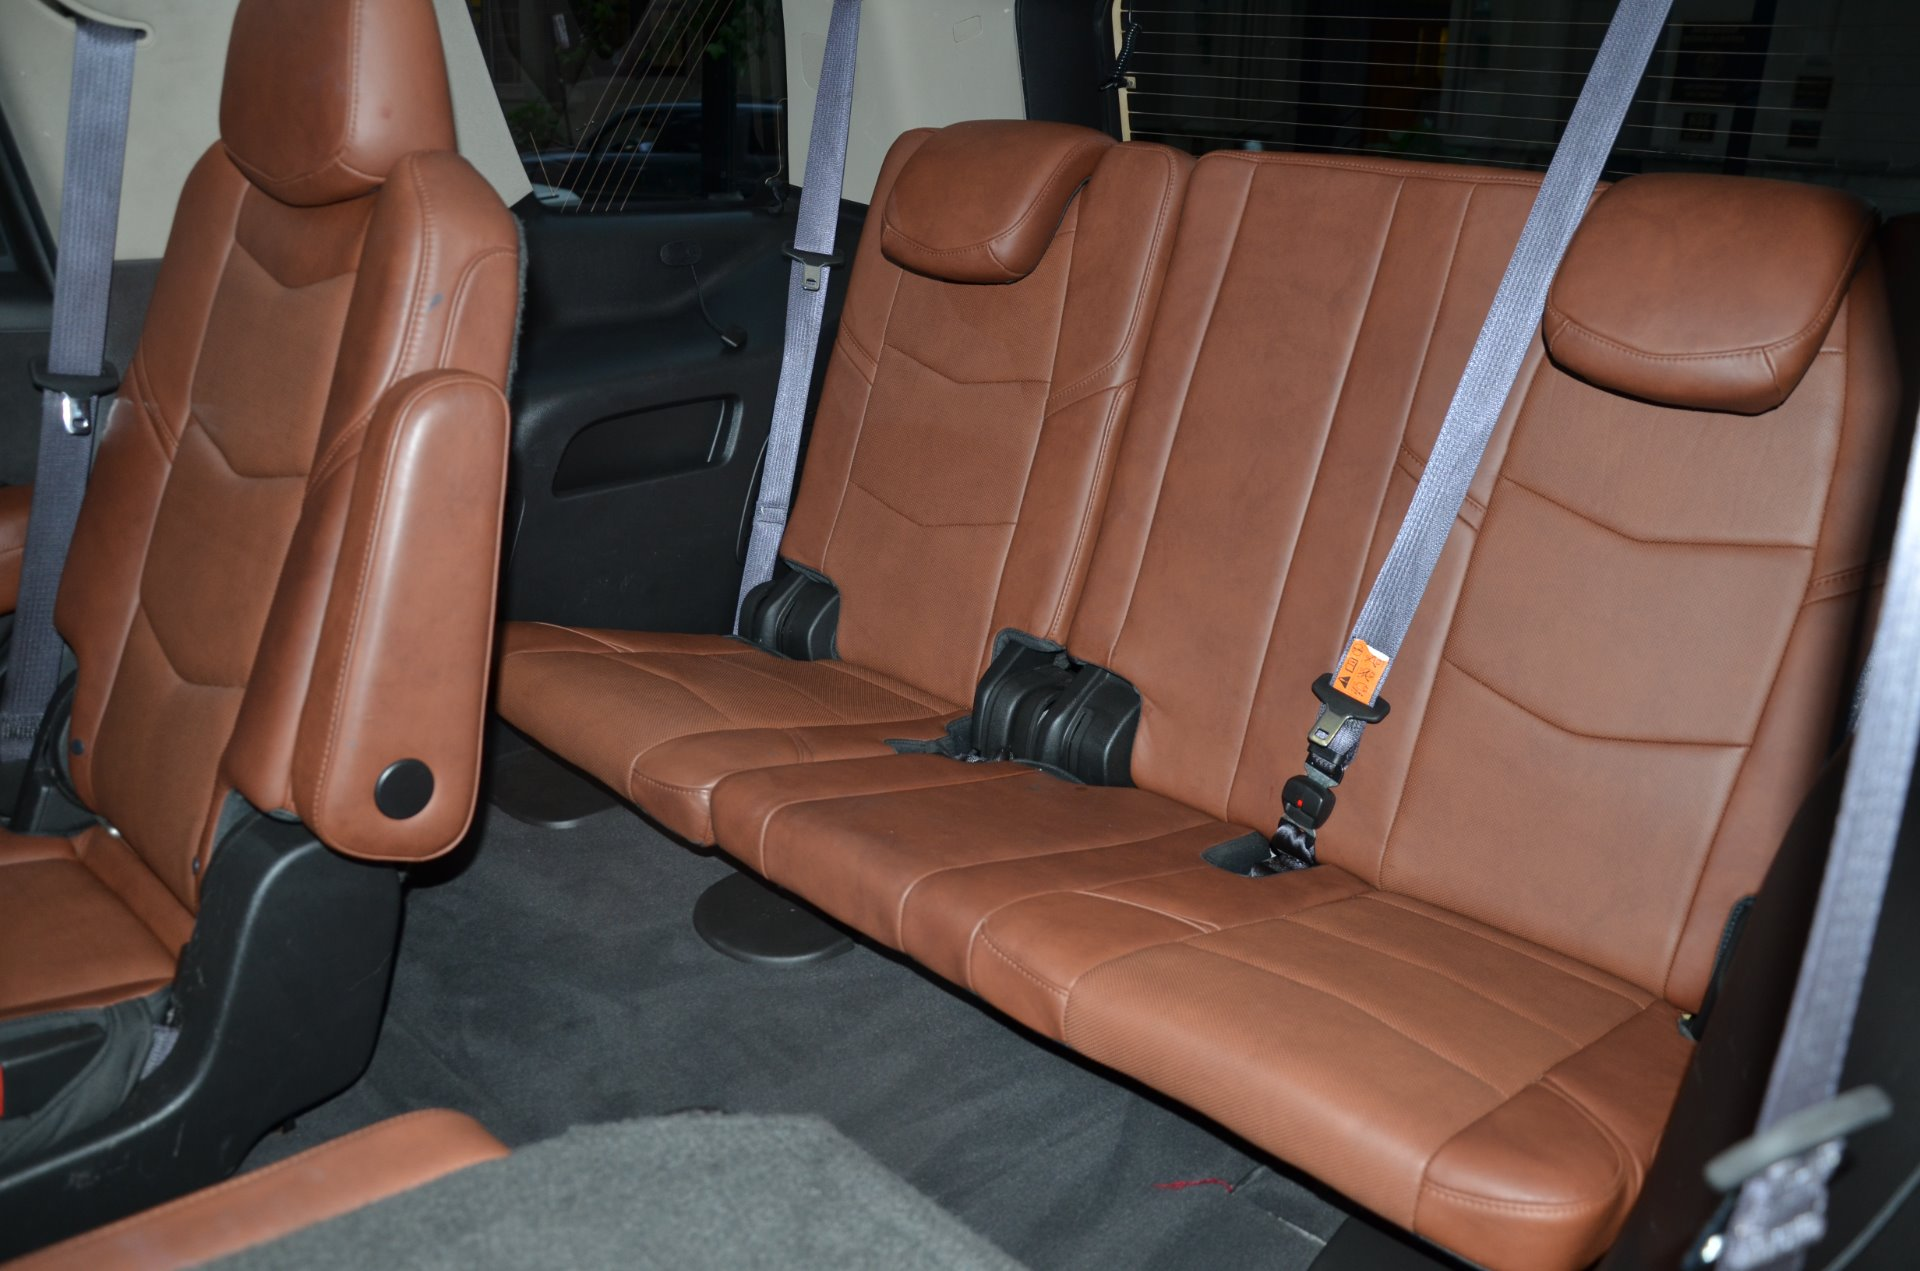 reviews escalade the cadillac east middle drive luxury escalademotoring first car of